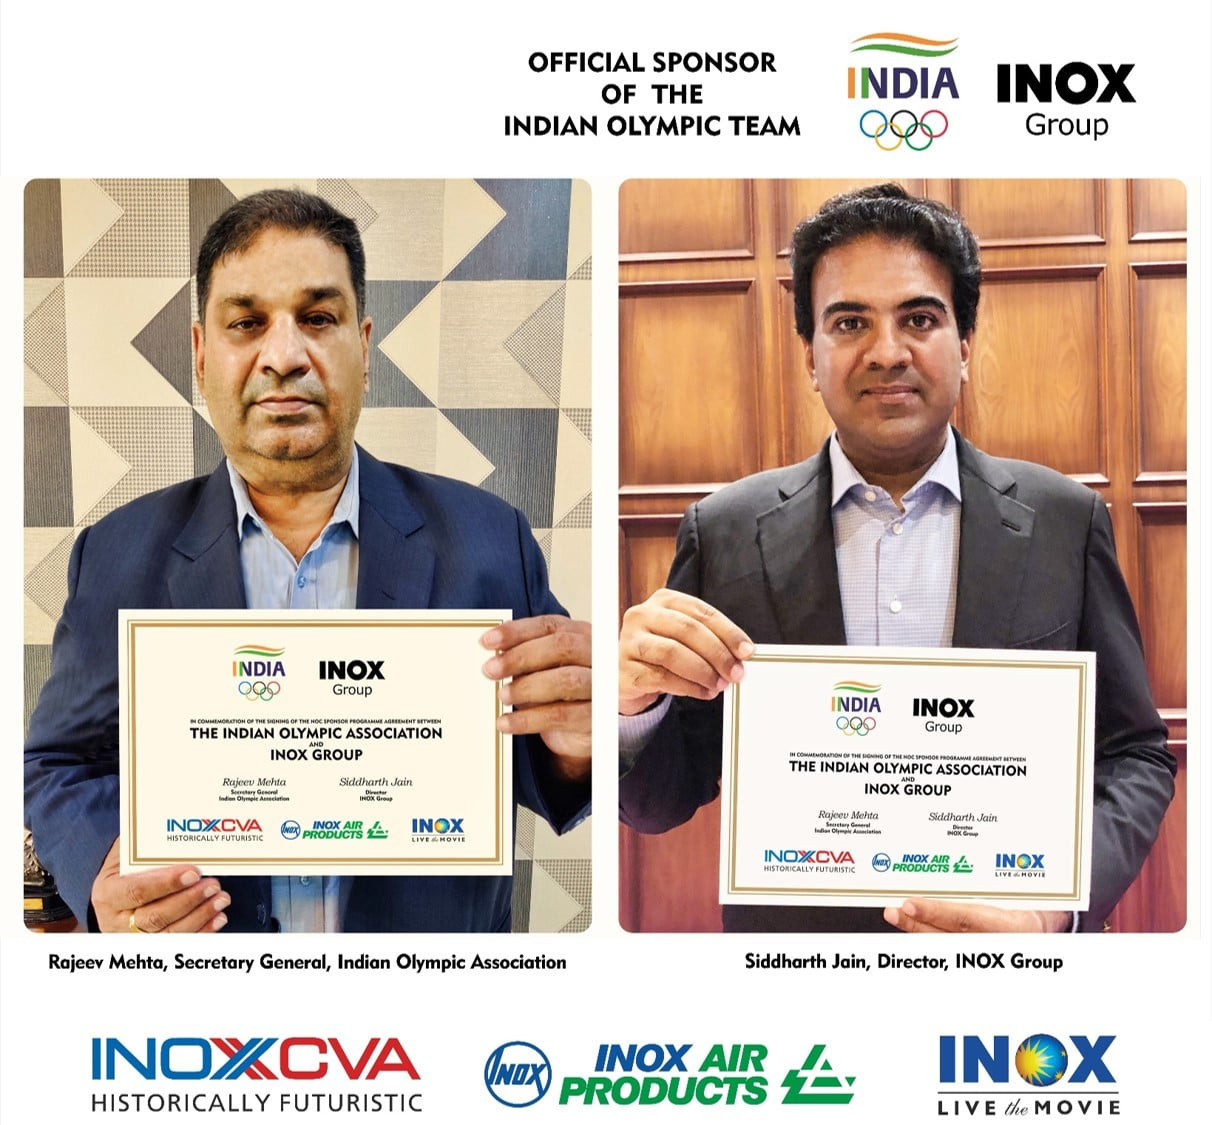 INOX Group named official sponsor of Indian Olympic Association for Tokyo 2020